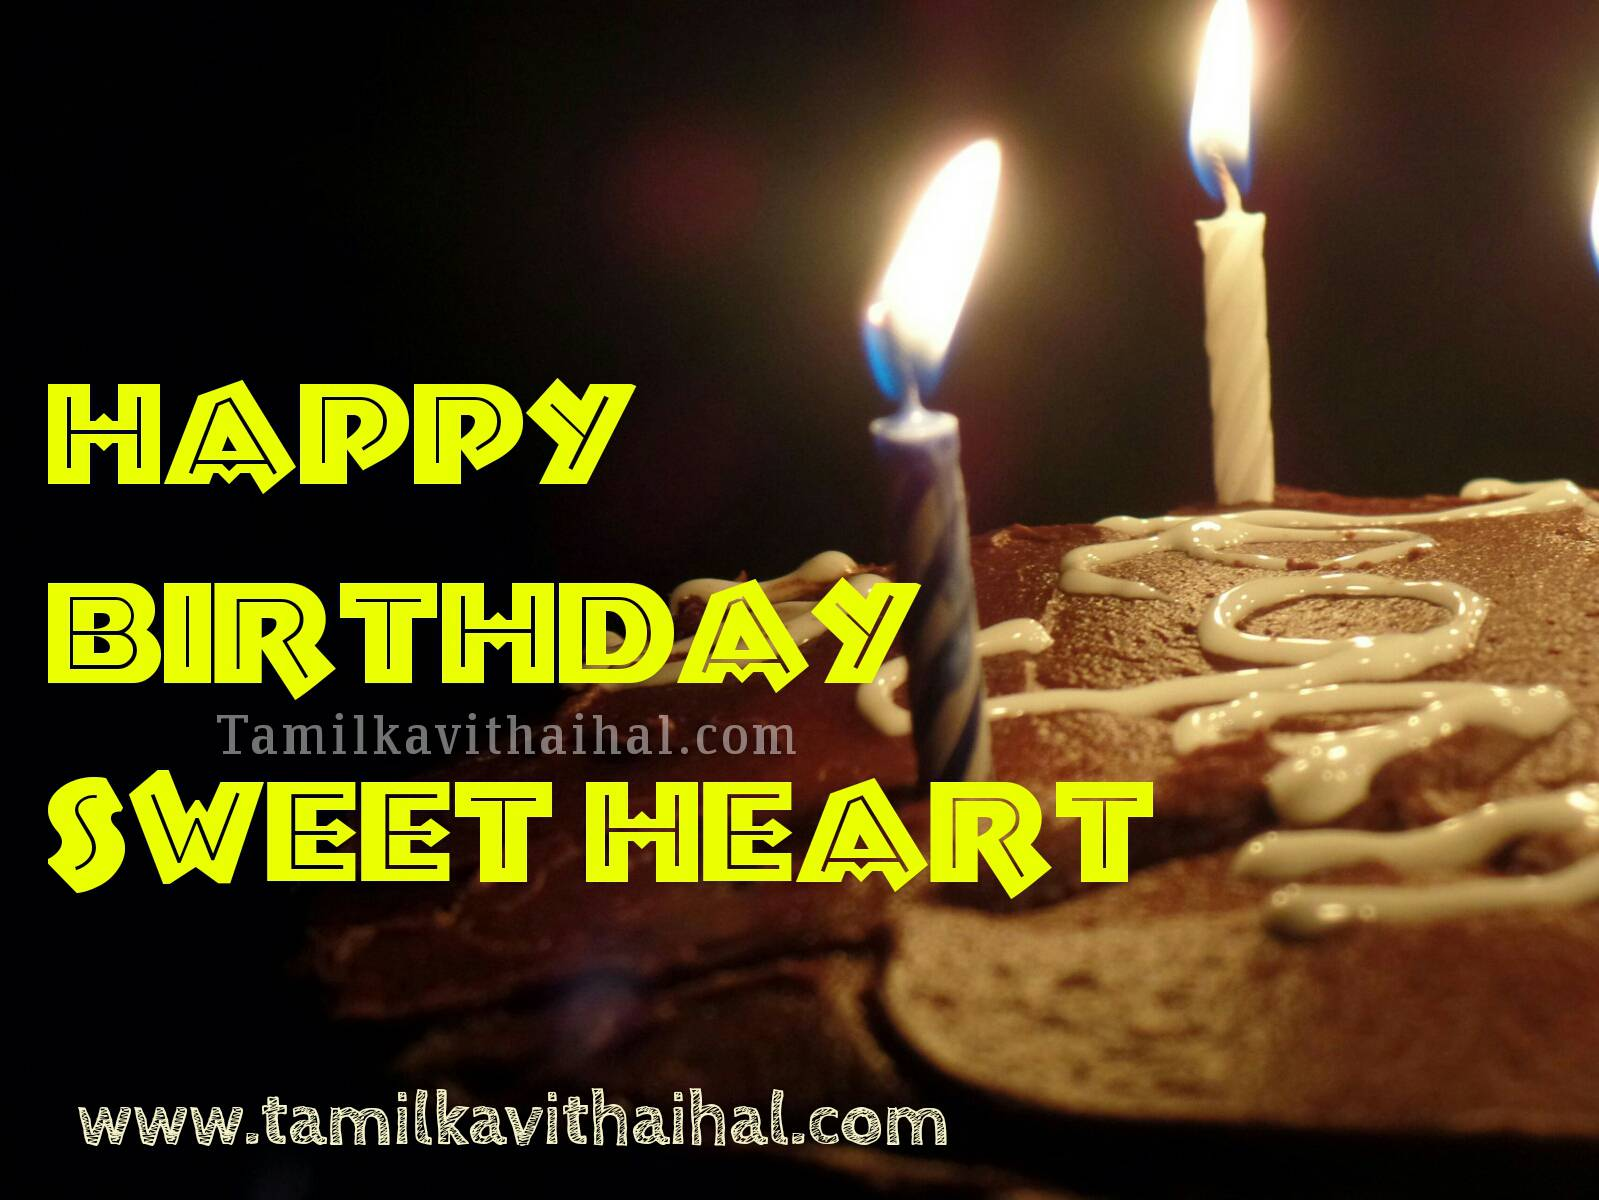 Cute pirantha naal valthukkal image happy birthday wishes hd wallpaper whatsapp dp status download